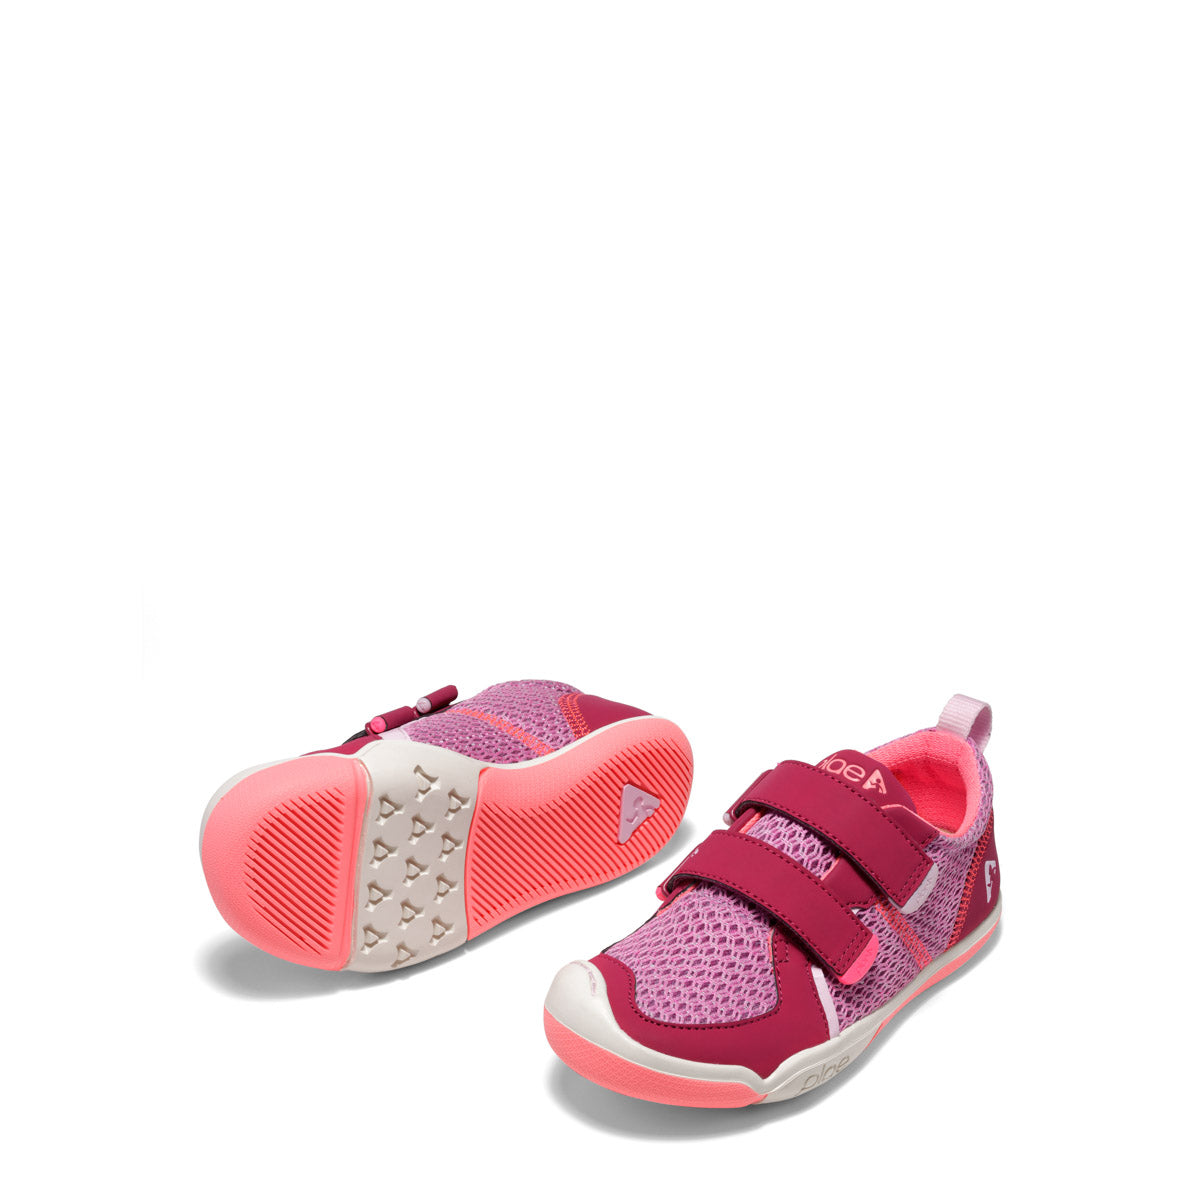 Plae TY H&L in Hibiscus Pink (Sizes 1-3)